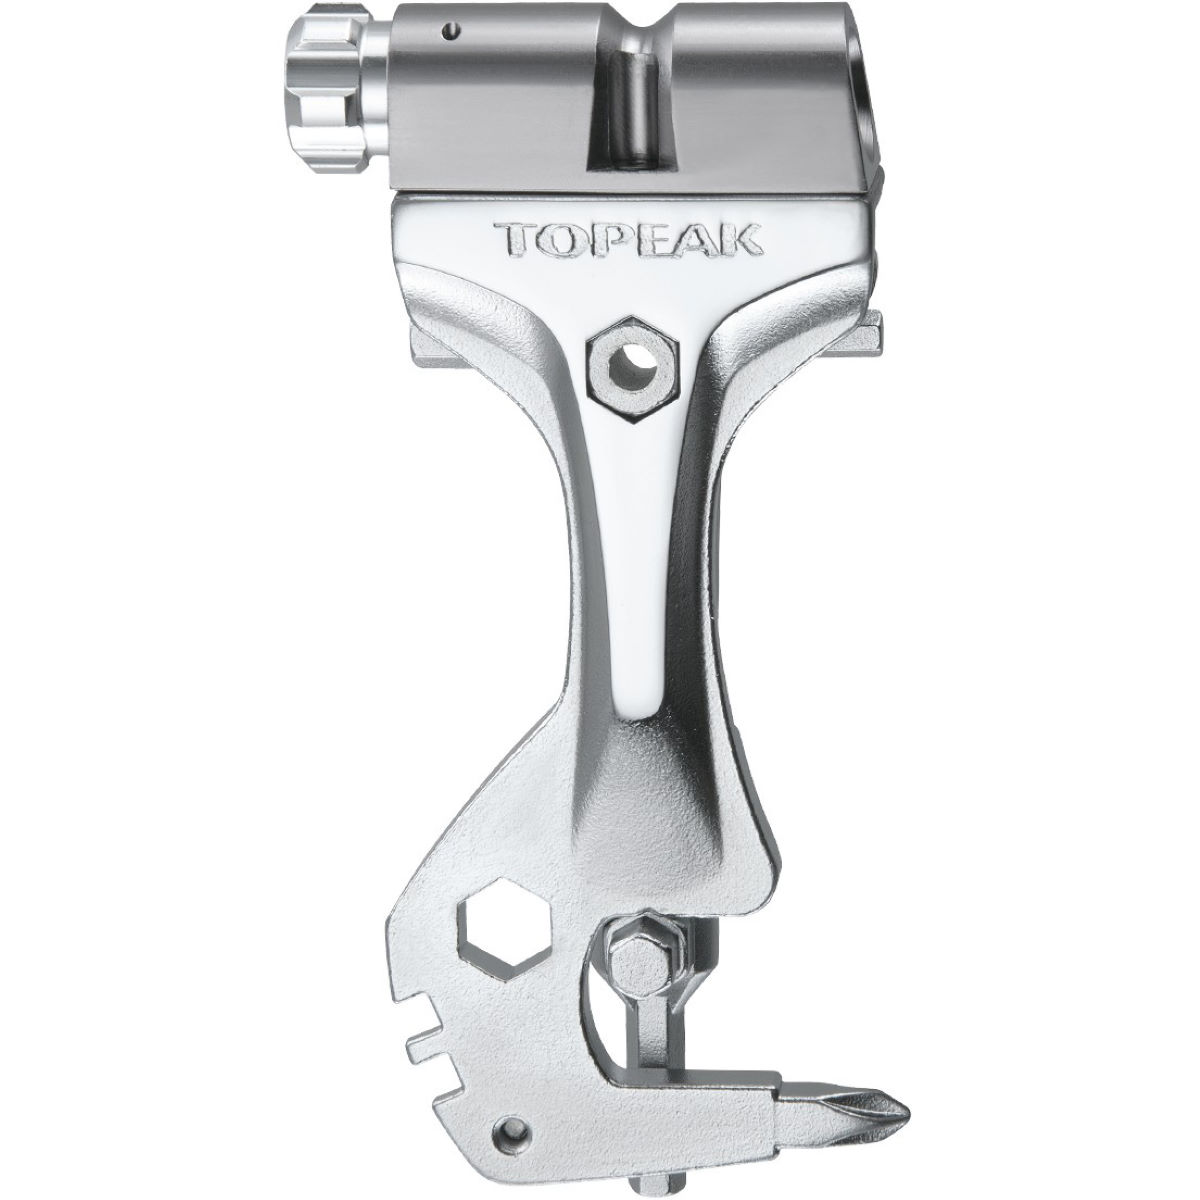 Topeak Topeak Tool Monster Air with CO2 Inflator   Multi Tools